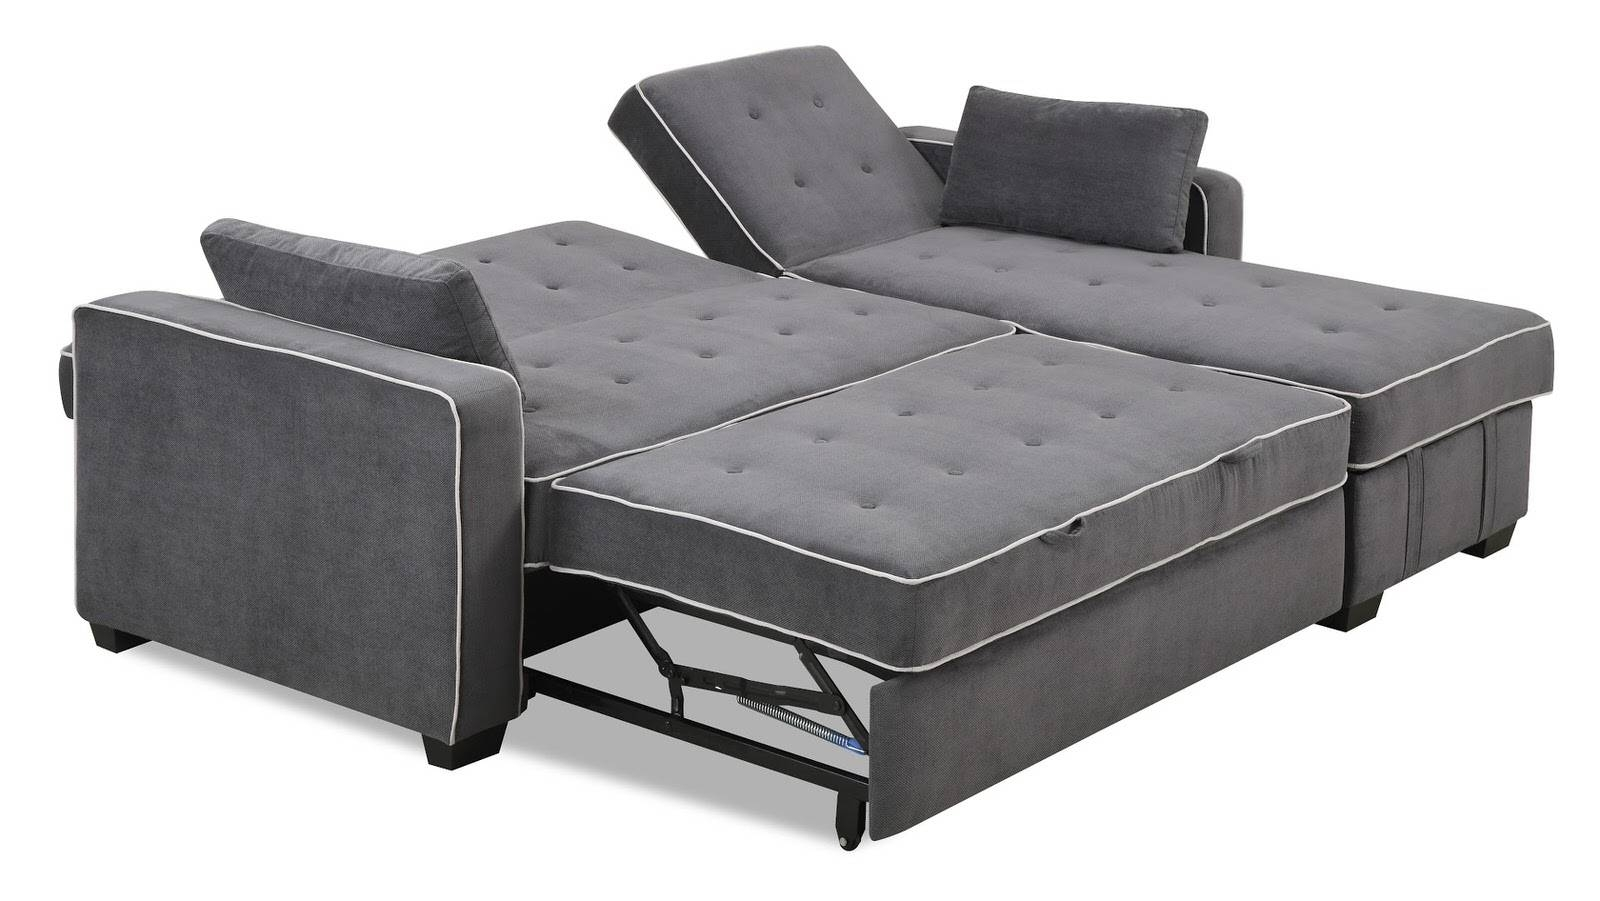 Augustine King Size Sofa Bed Moon Greyserta Lifestyle Within Beds Image